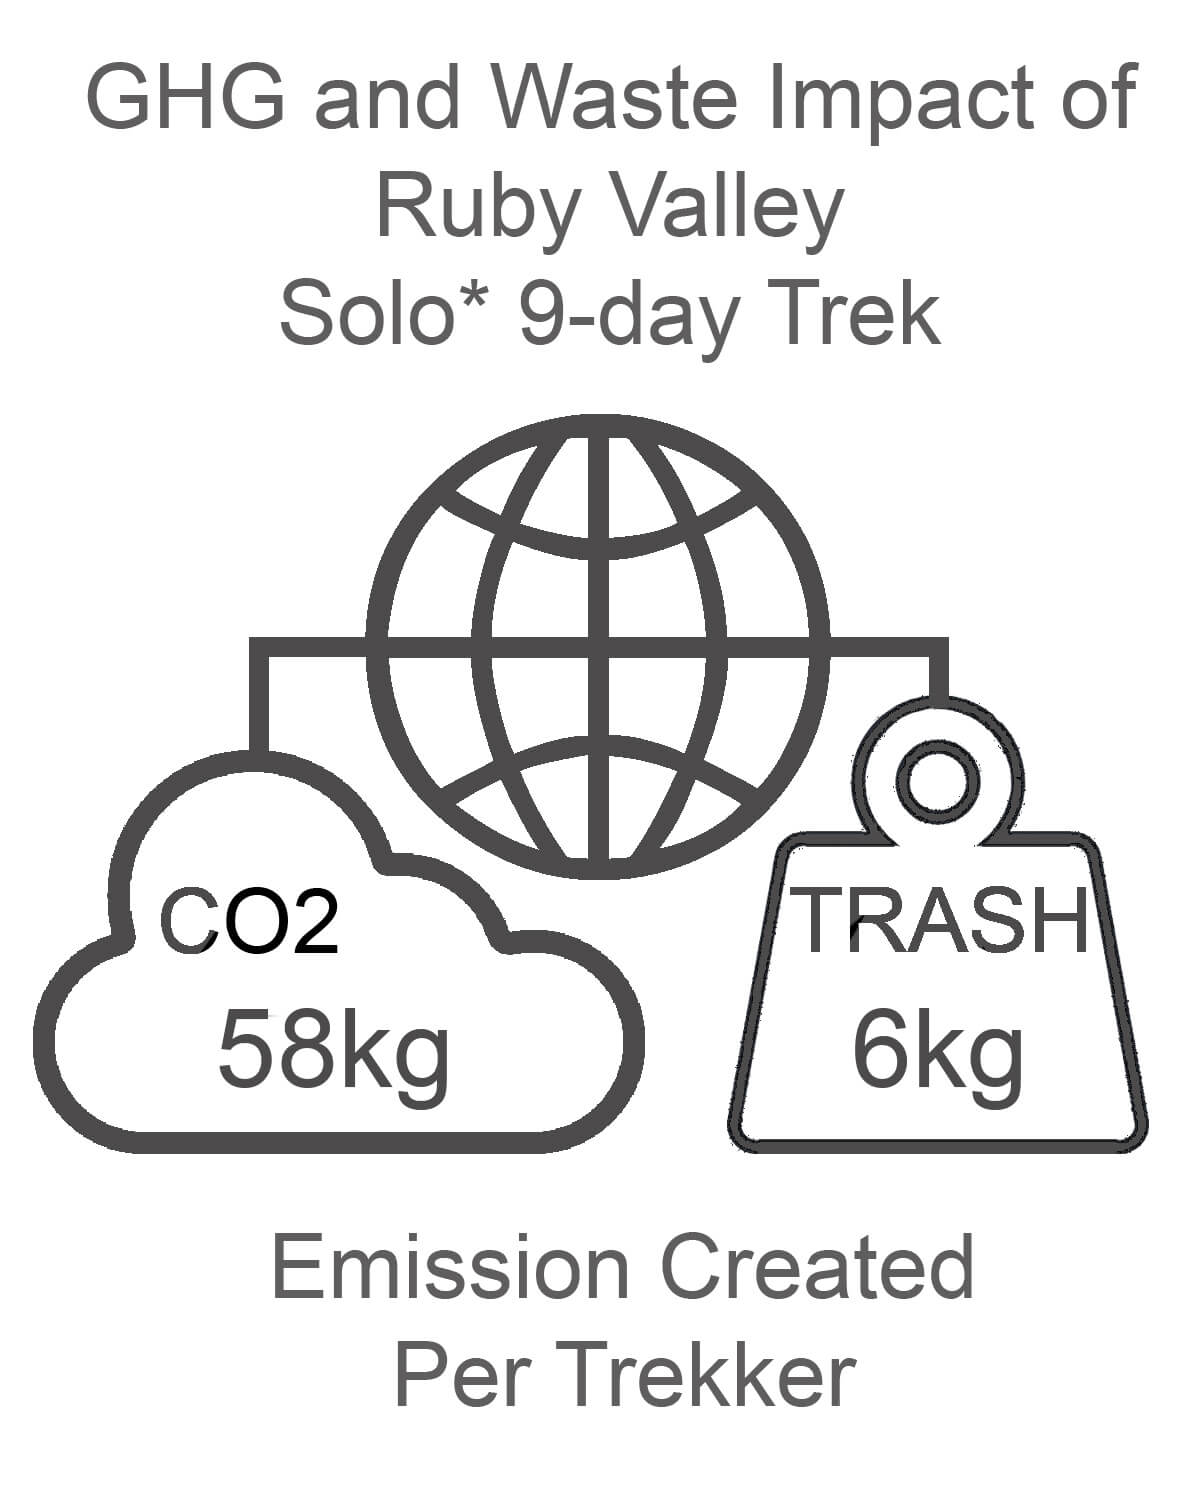 Ruby Valley GHG and Waste Impact SOLO